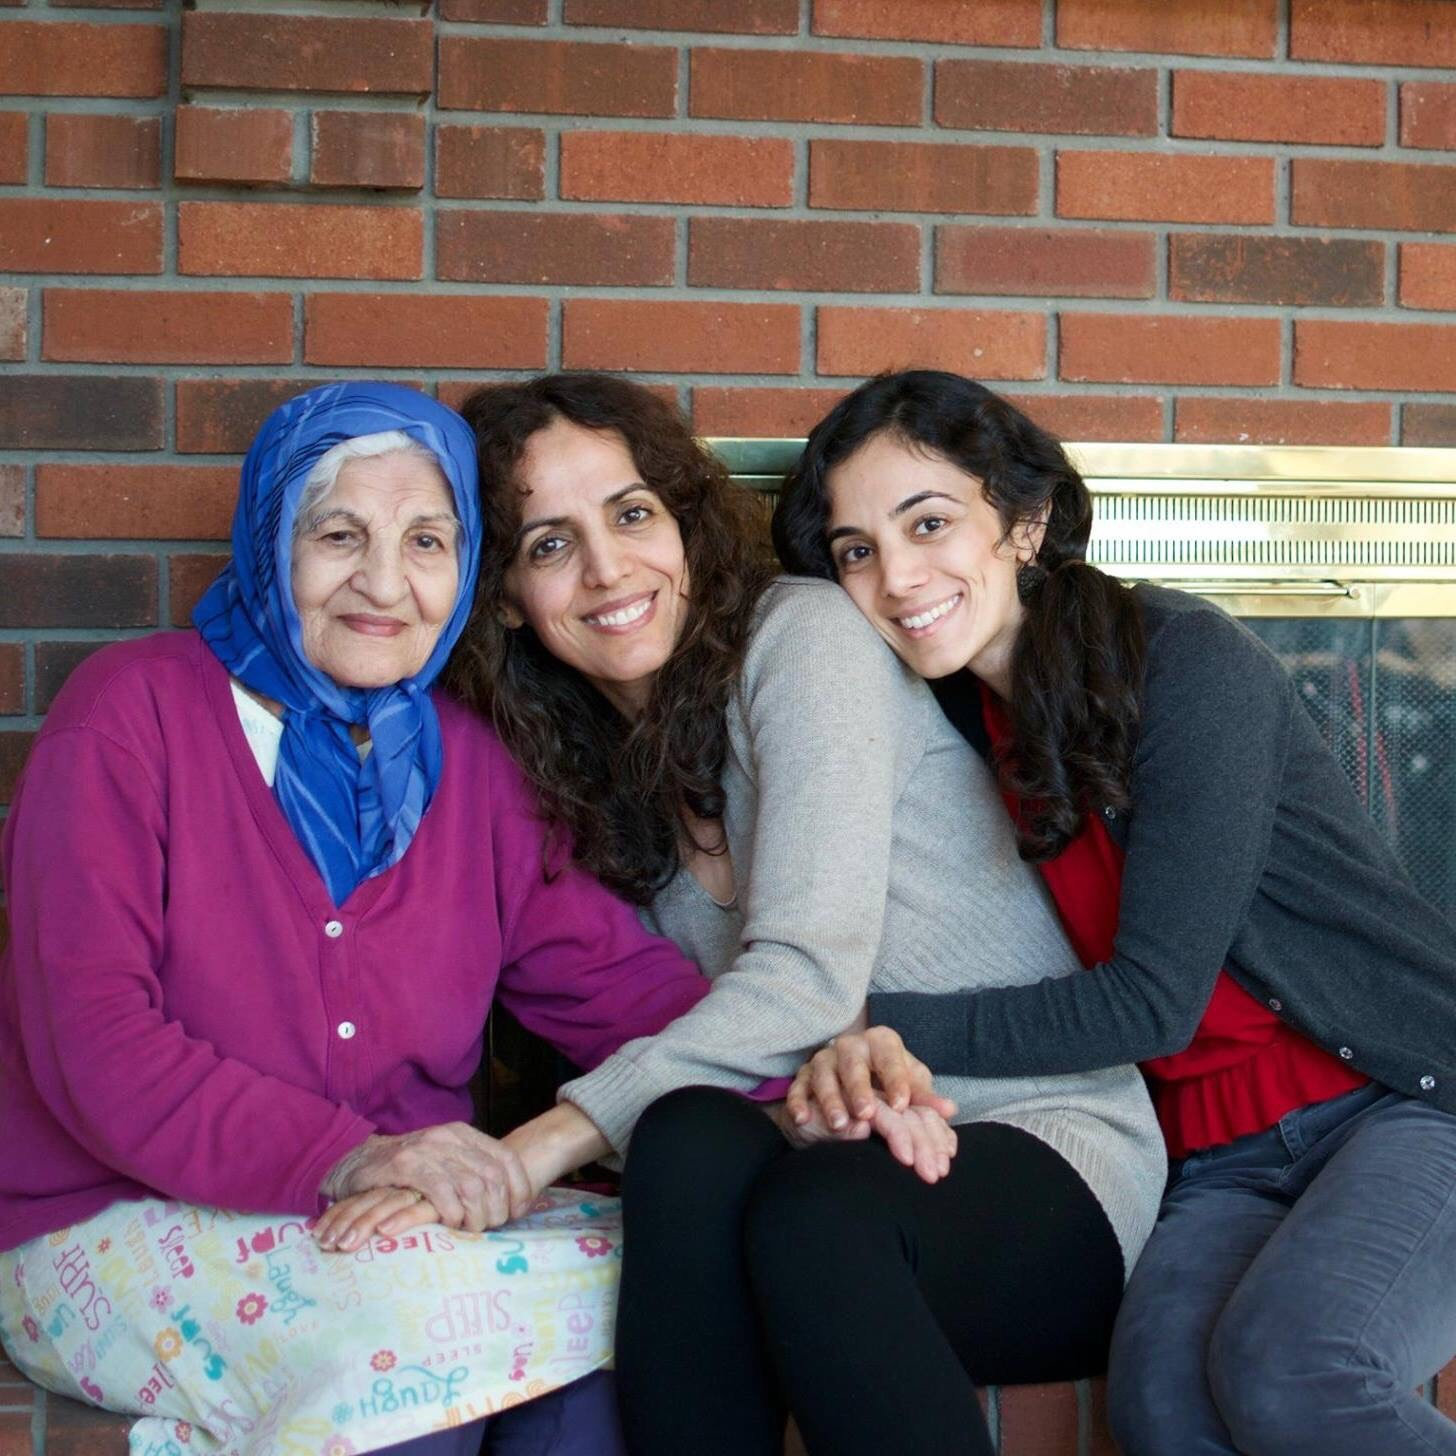 Hamideh Seyed Ali (grandmother), 79, Noushin Farasati (mother), 52, Maryam Khatami (sister), 32.